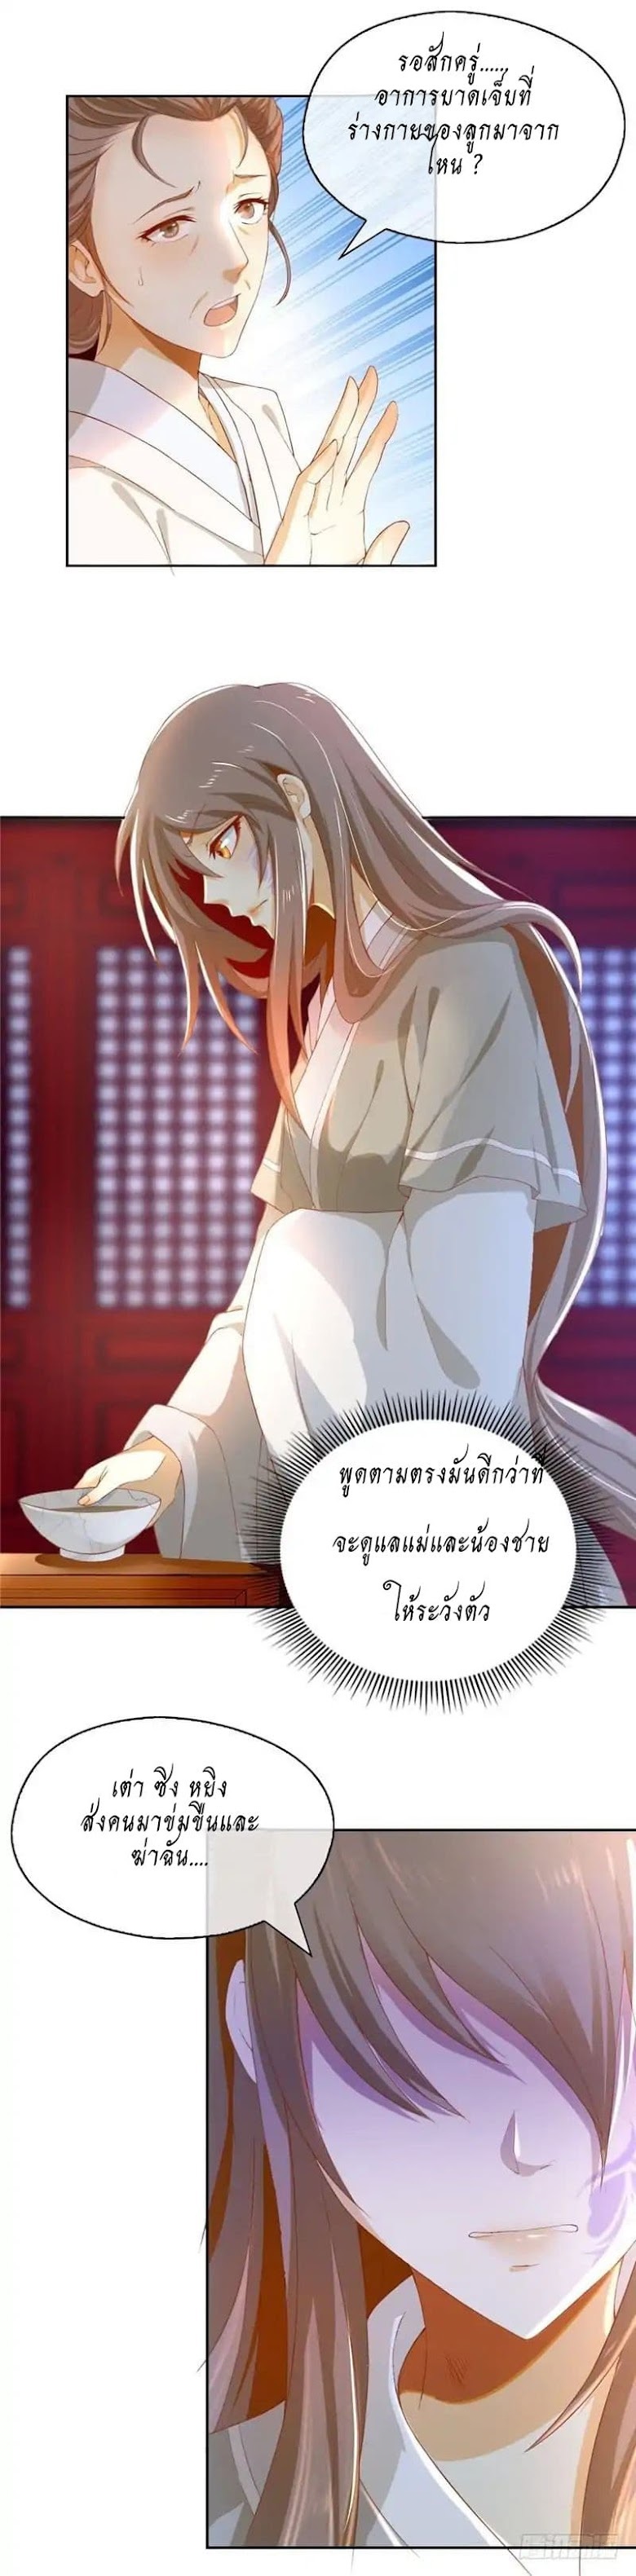 The Evil King s Wicked Consort - หน้า 25